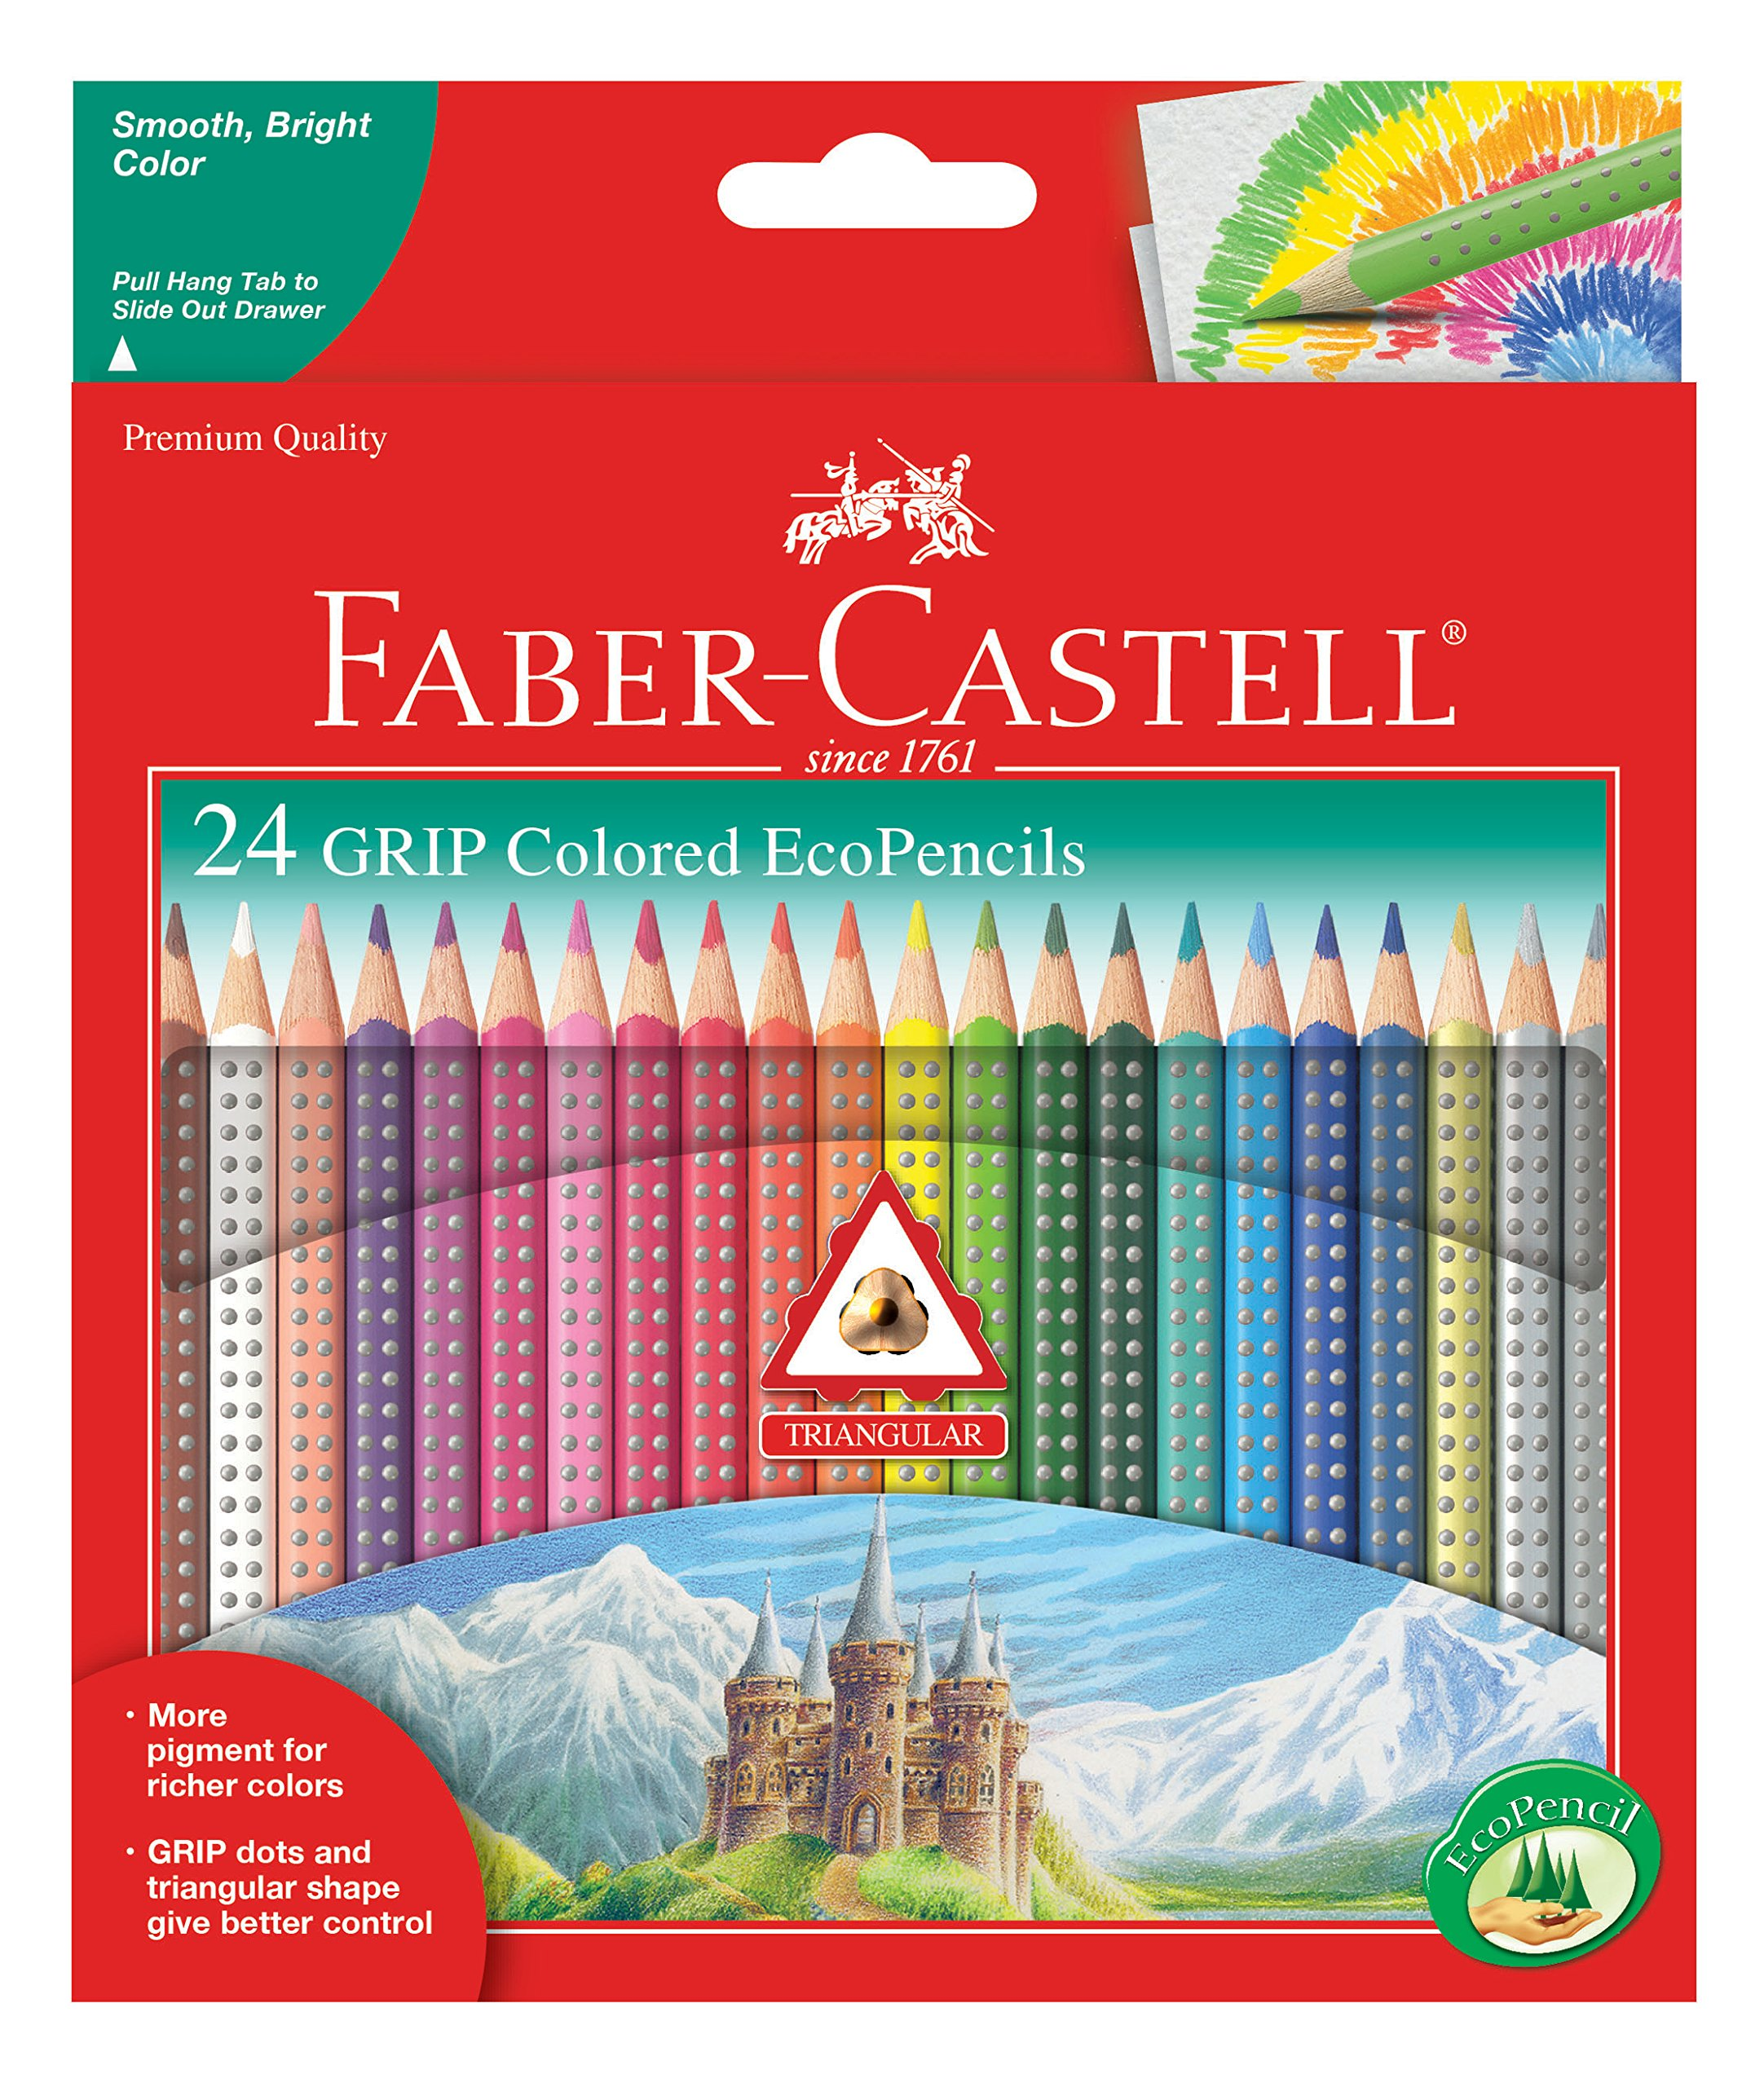 Faber-Castell Grip Colored EcoPencils - 24 Count by Faber Castell